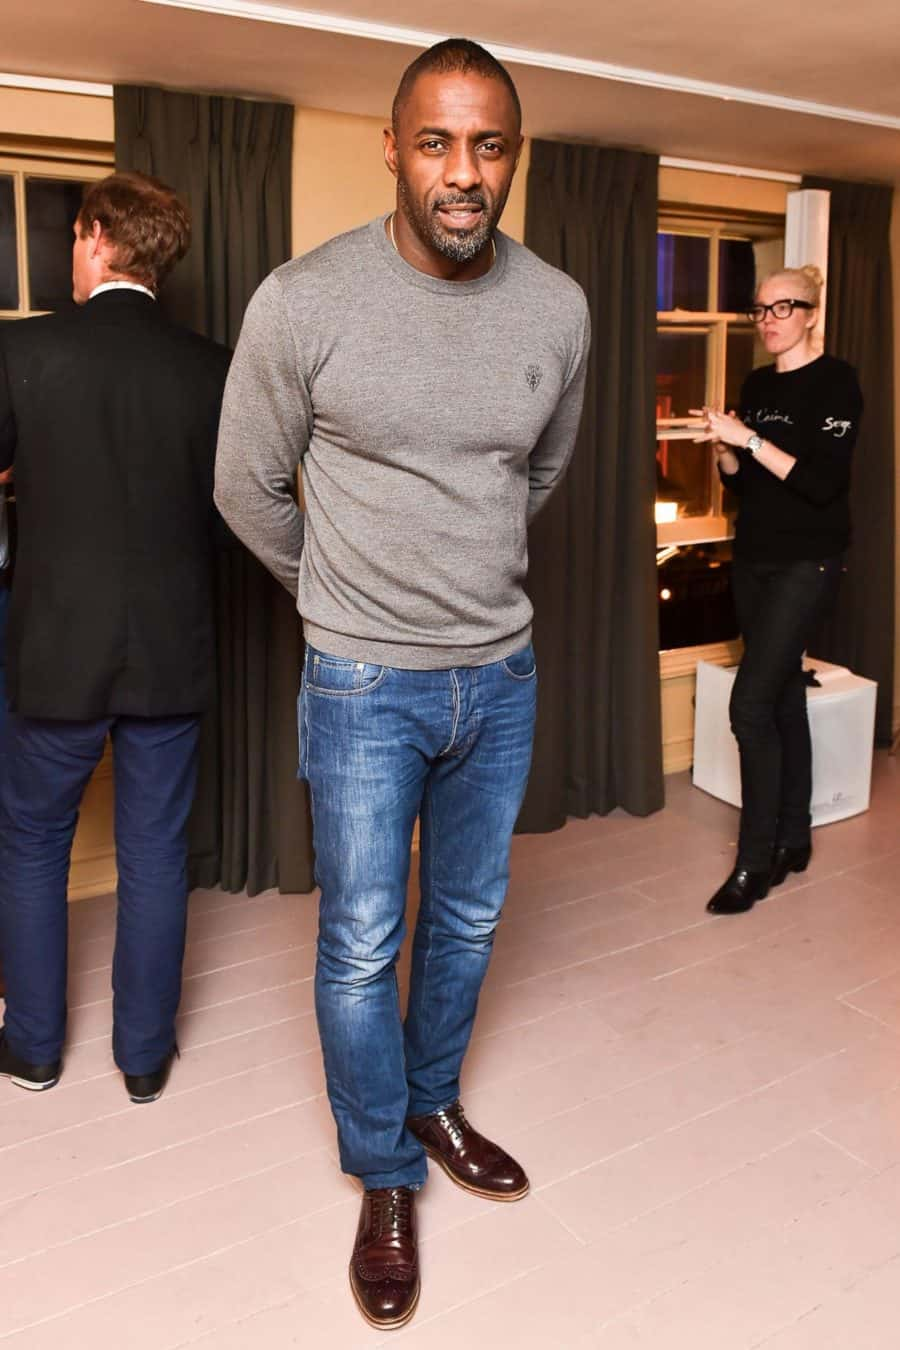 Image of Idris Elba